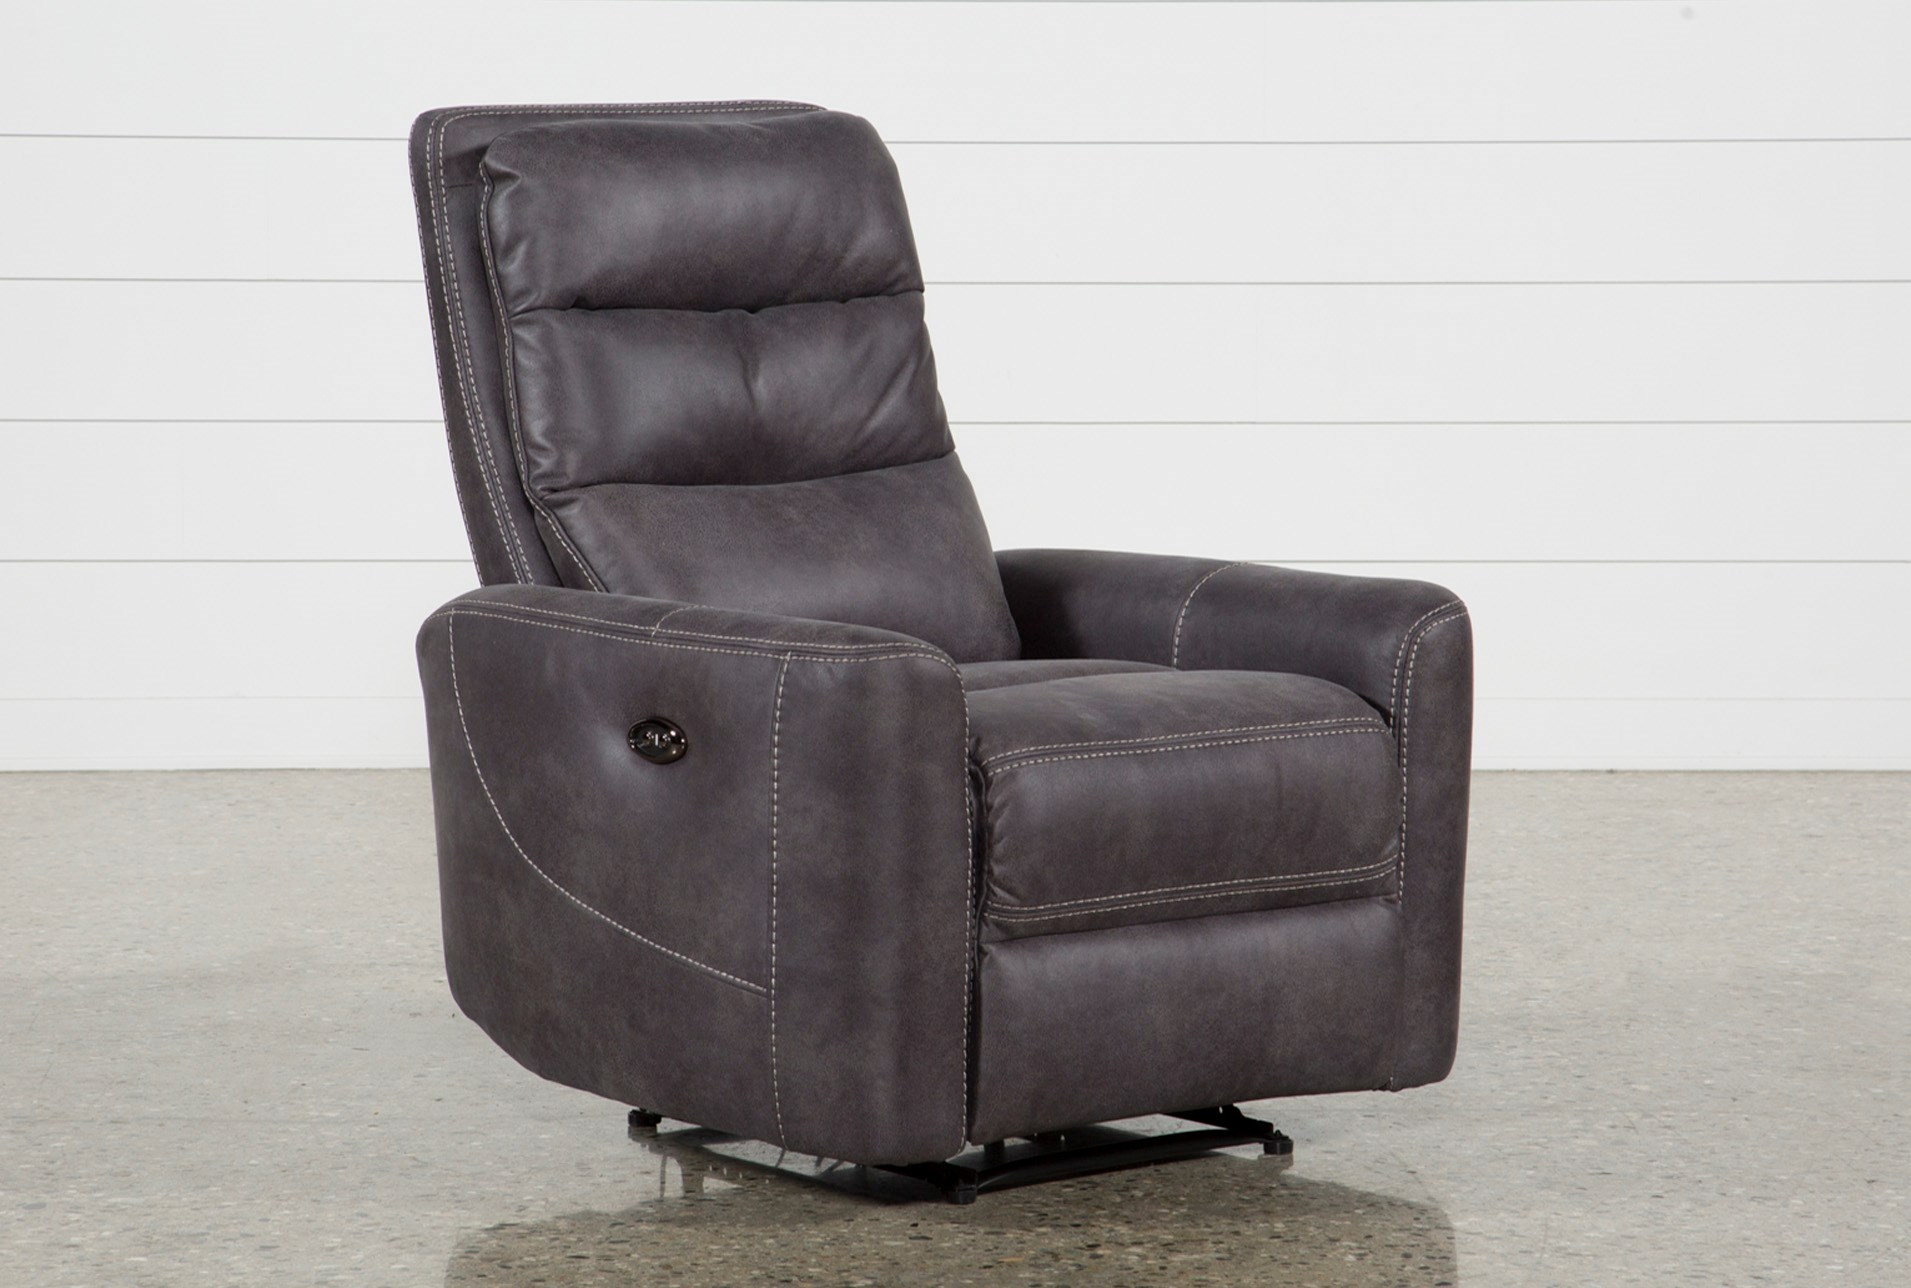 Malia power recliner with usb qty 1 has been successfully added to your cart